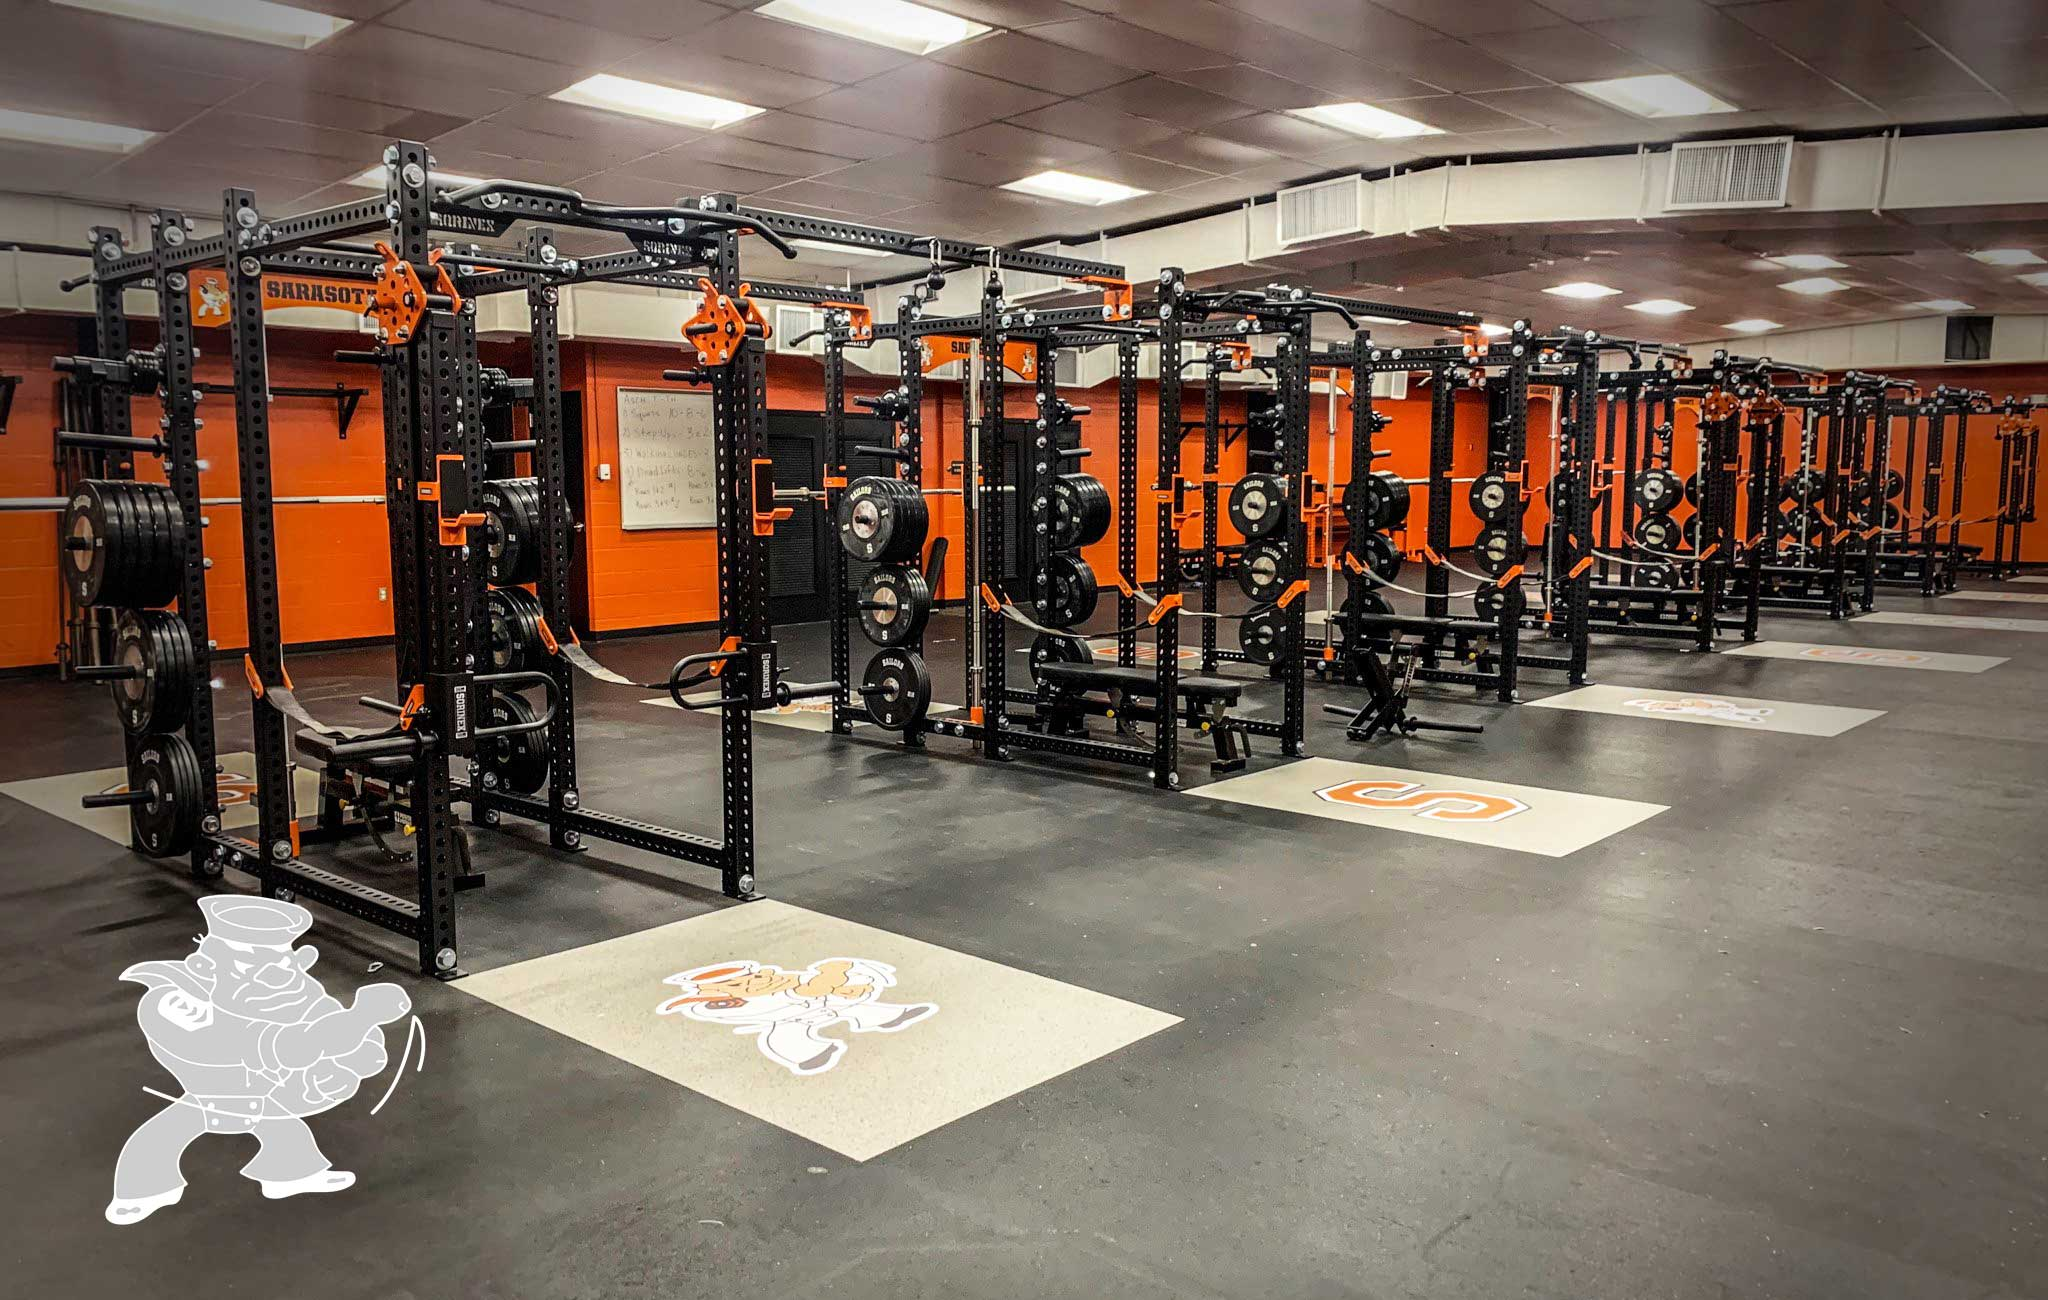 Sarasota High School Sorinex strength and conditioning facility